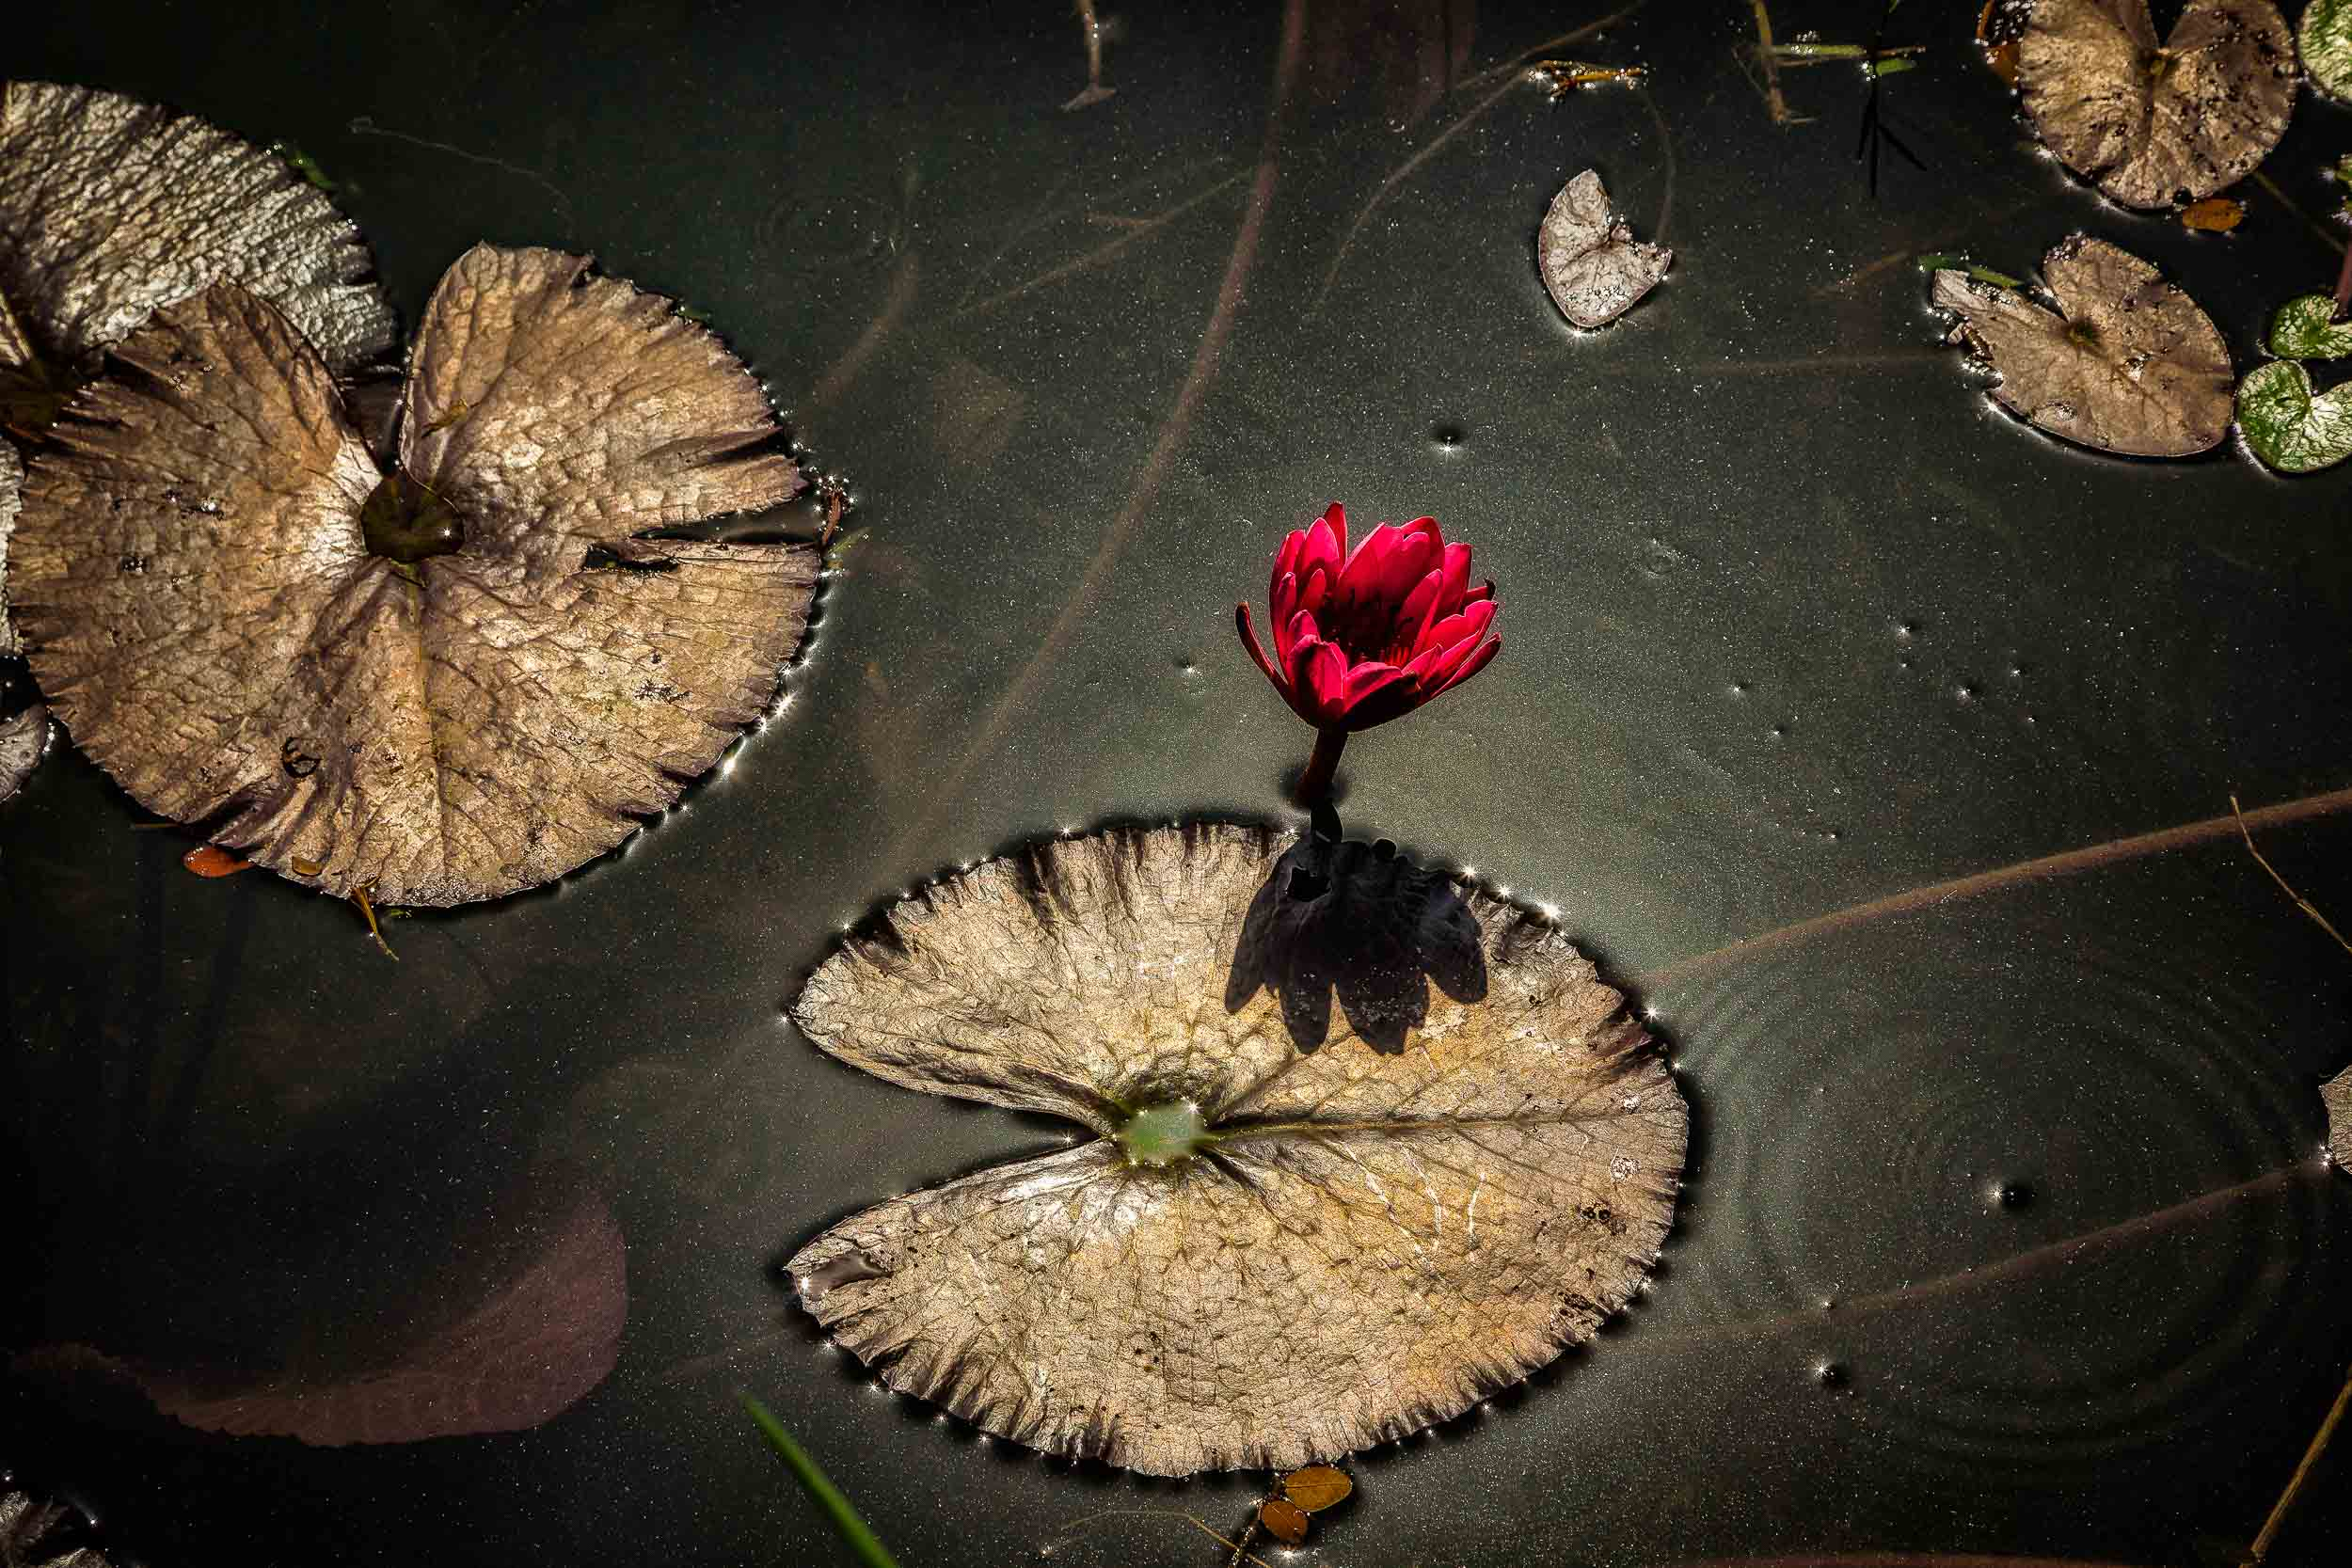 A  lotus flower  on a pond in the grounds of the  Kolkata Botanical Gardens  in  Kolkata, India .